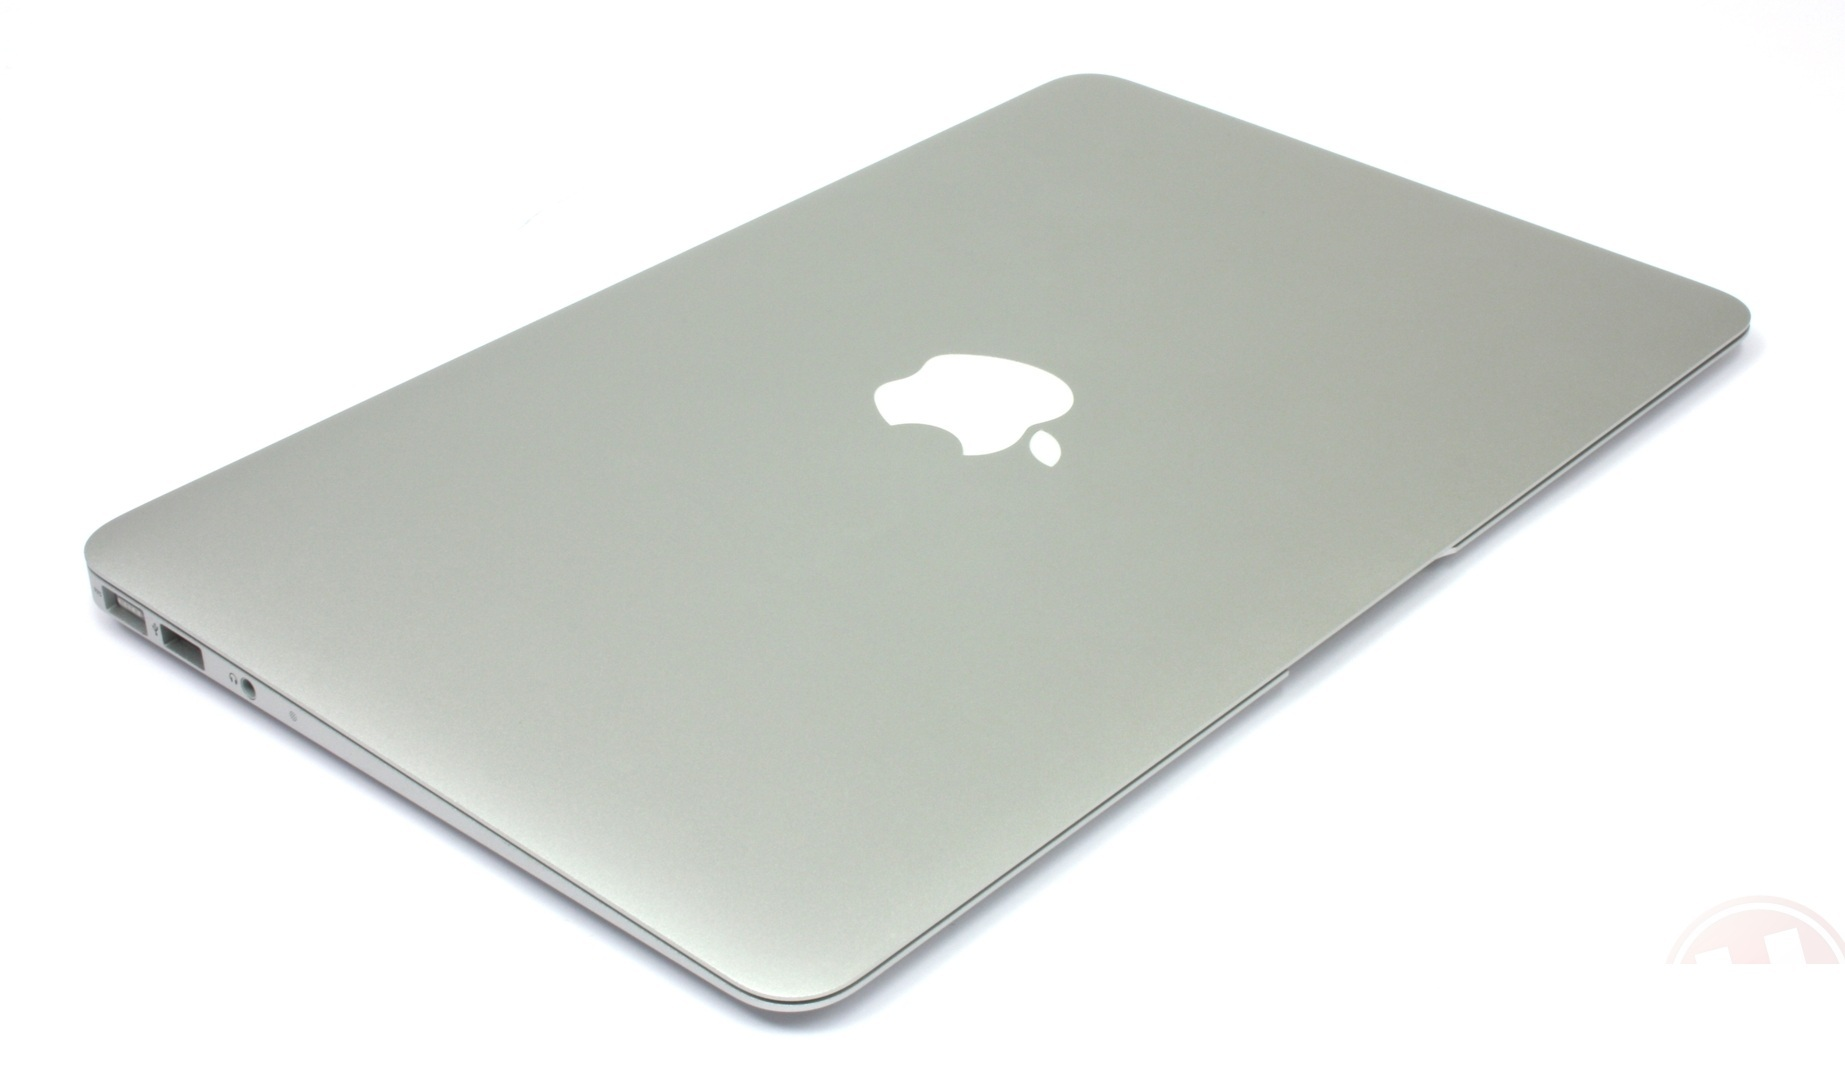 apple-macbook-air-11.6-mc968